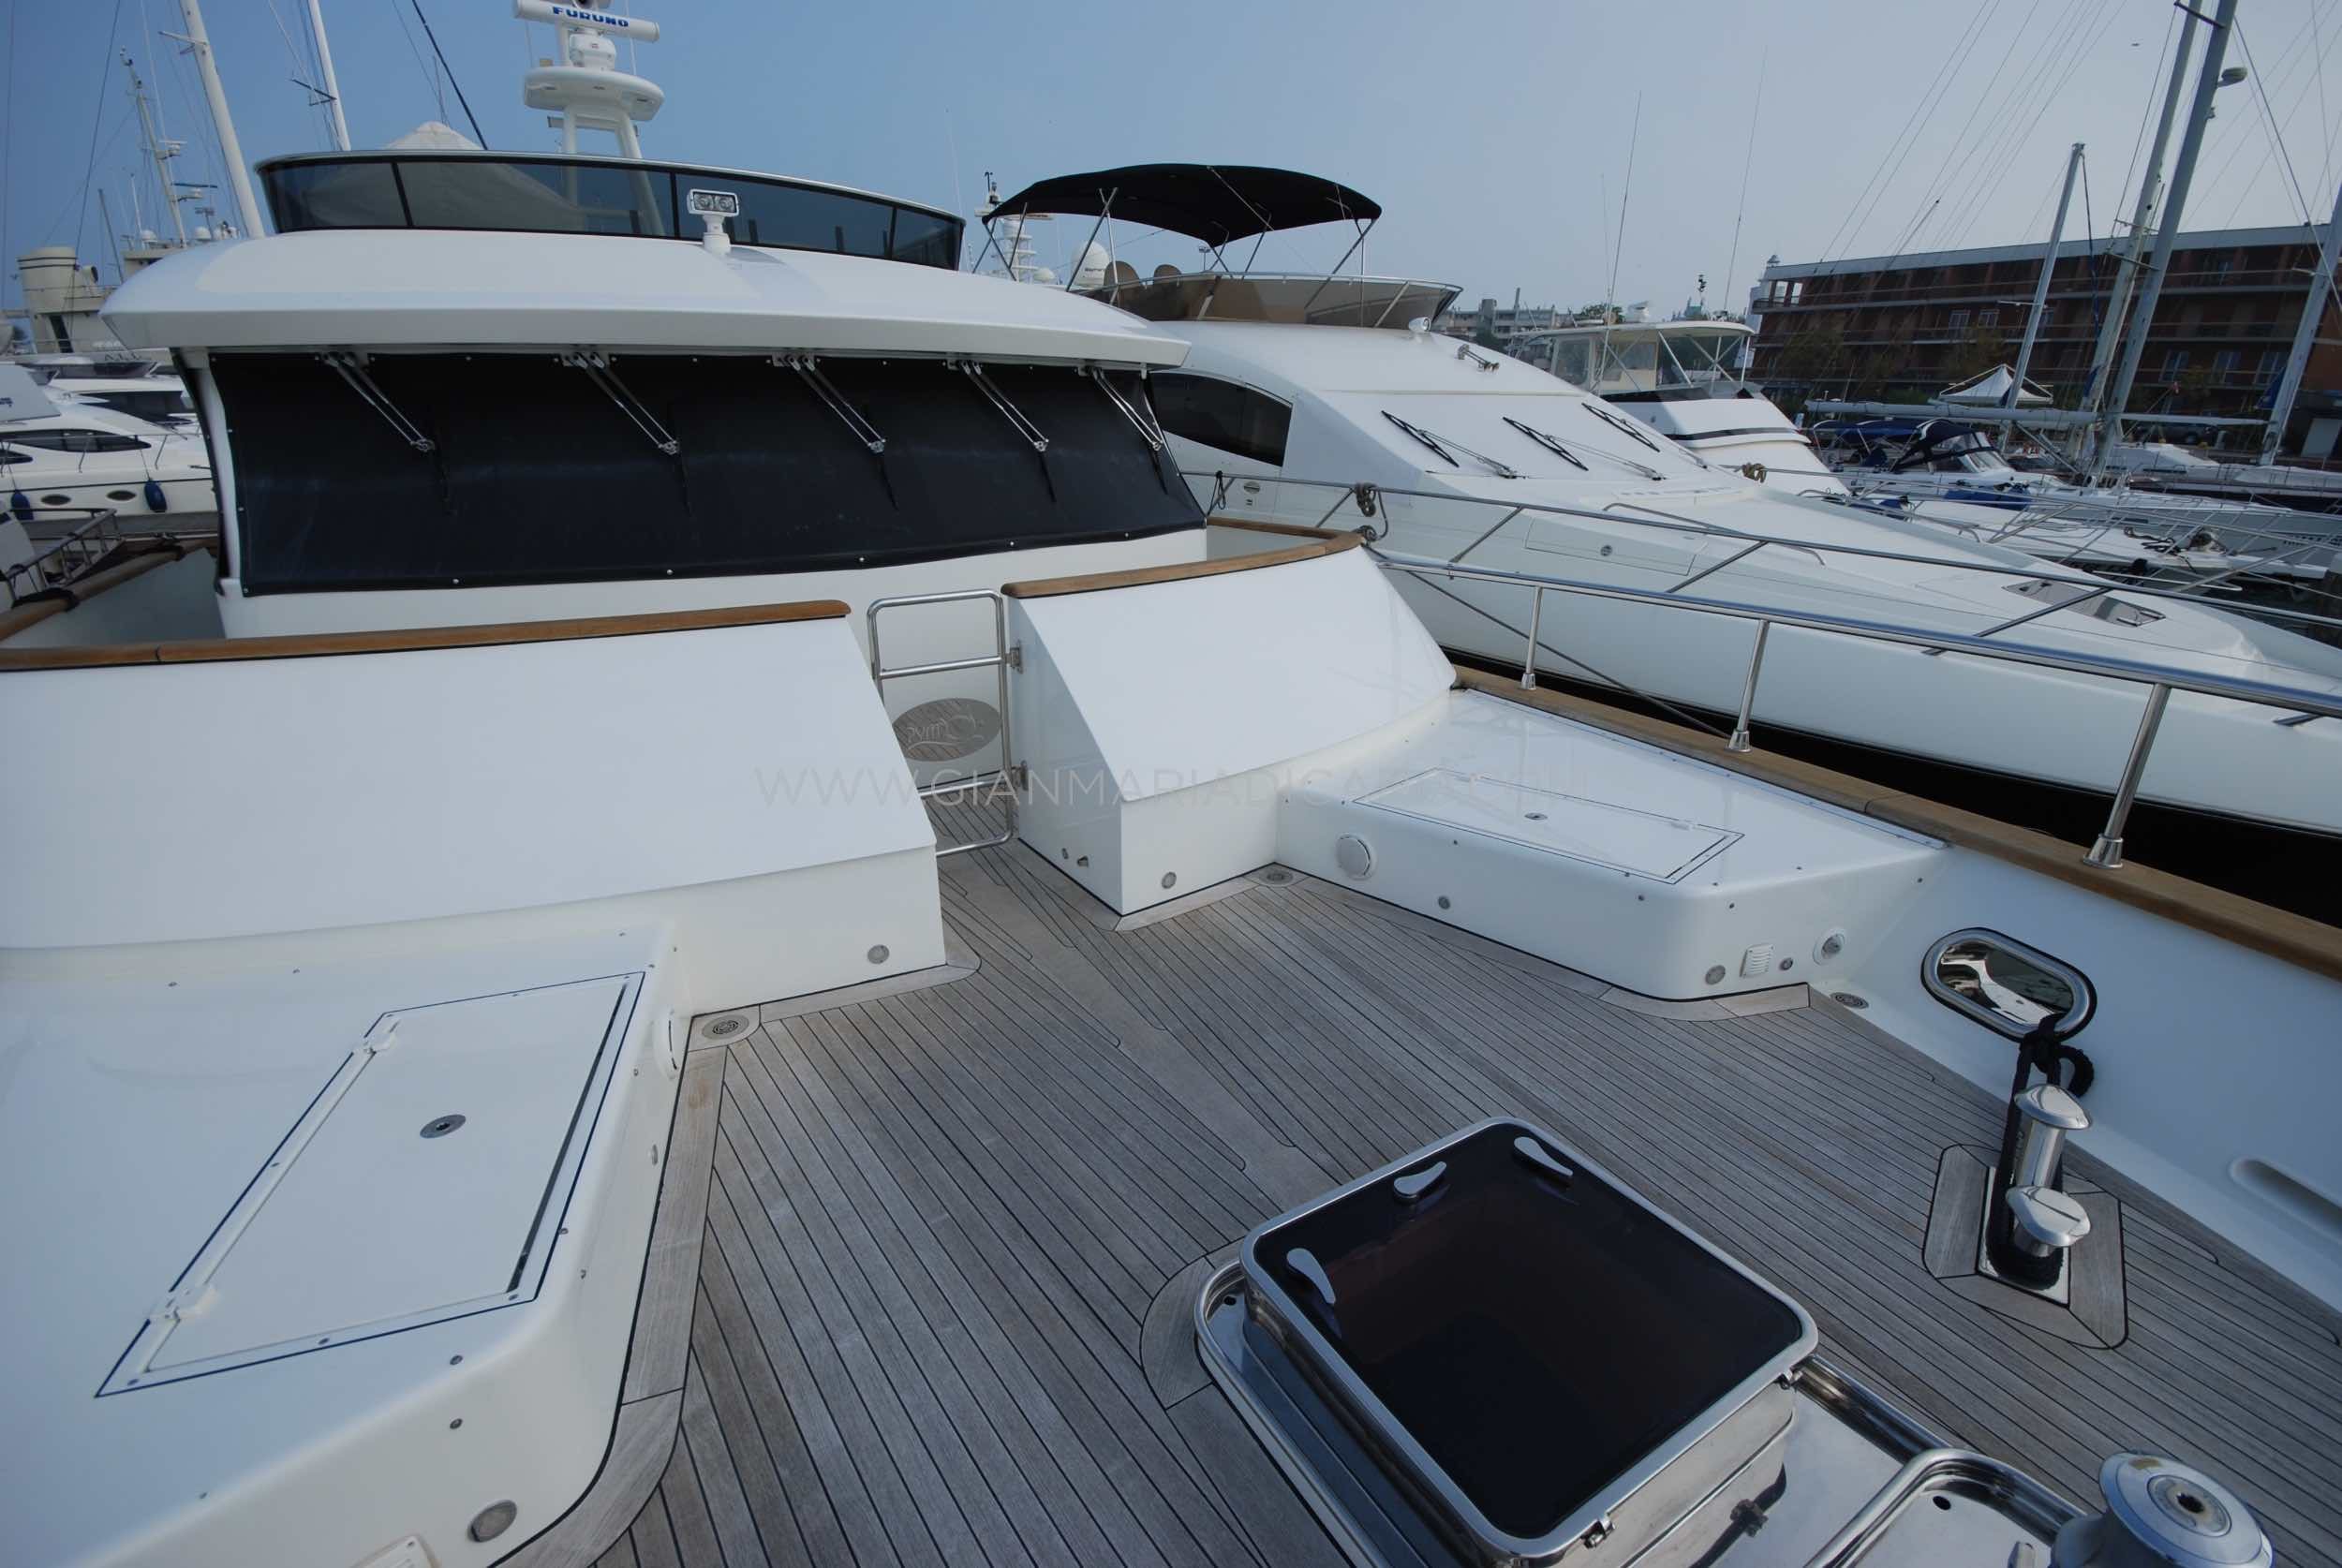 emys-yacht-22-unica-for-sale-35.jpg